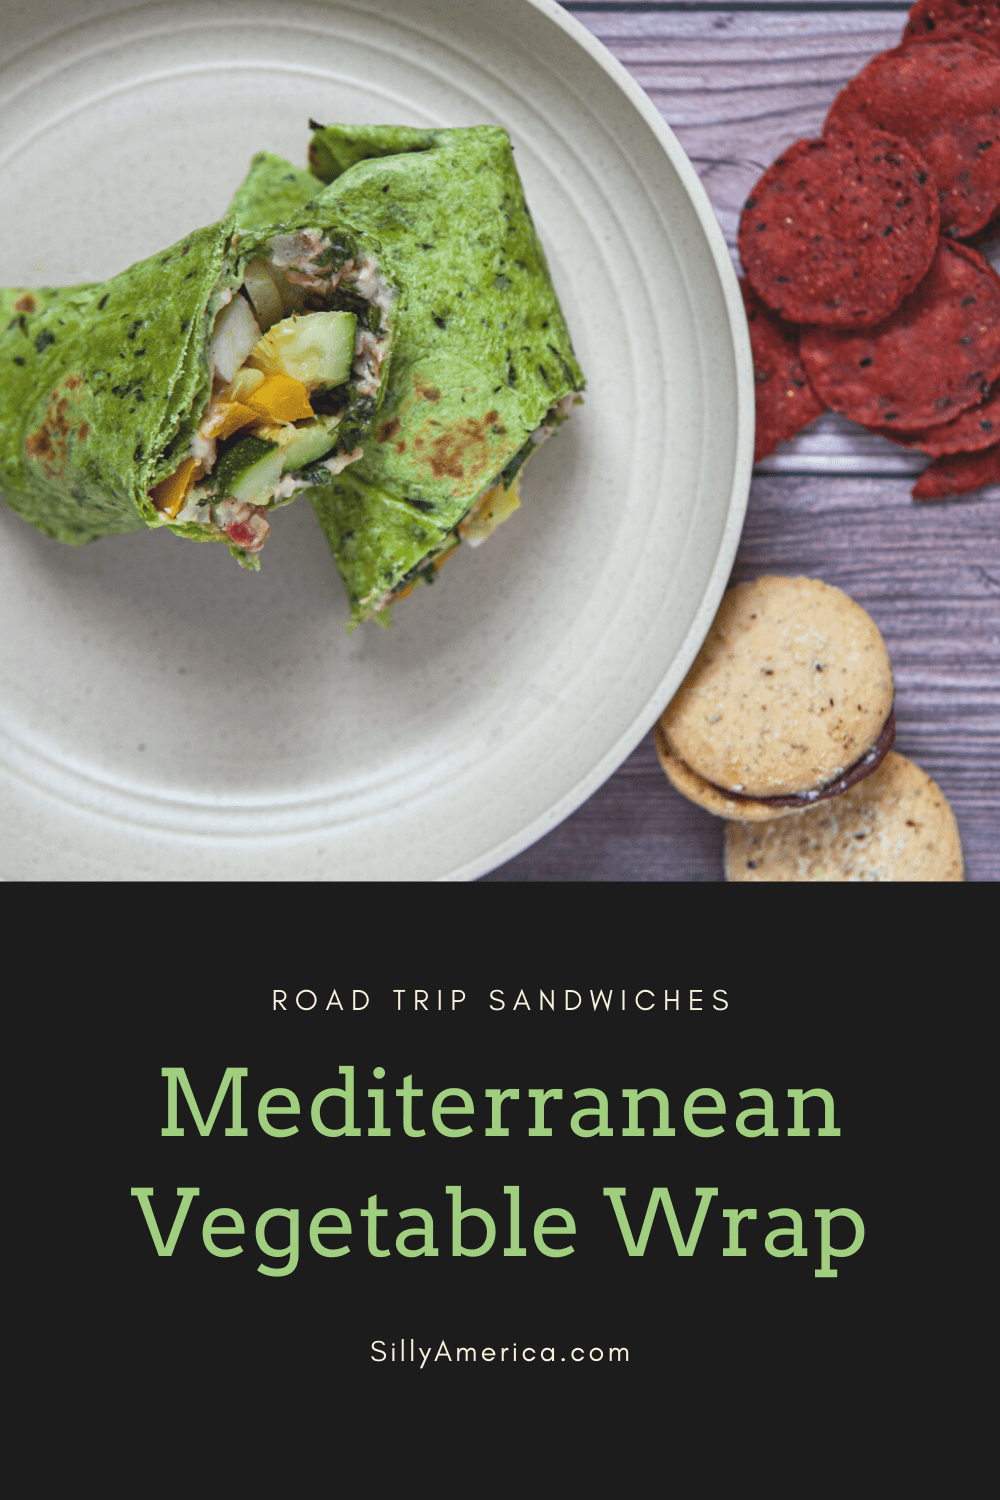 This flavorful vegetarian road trip sandwich is sure to please everyone in the car. Roast the vegetables for this Mediterranean Vegetable Wrap beforehand to assemble wraps or keep them separate in an air-tight container. In a pinch, raw vegetables will be just as tasty! #RoadTripMeals #RoadTripMealsForAdults #RoadTripMealsToPack #RoadTripMealsForFamilies #MakeAheadRoadTripMeals #CheapRoadTripMeals #RoadTripLunches #EasyRoadTripMeals #RoadTripMealsForKids  #RoadFood #RoadFoodIdeas #RoadTripFood